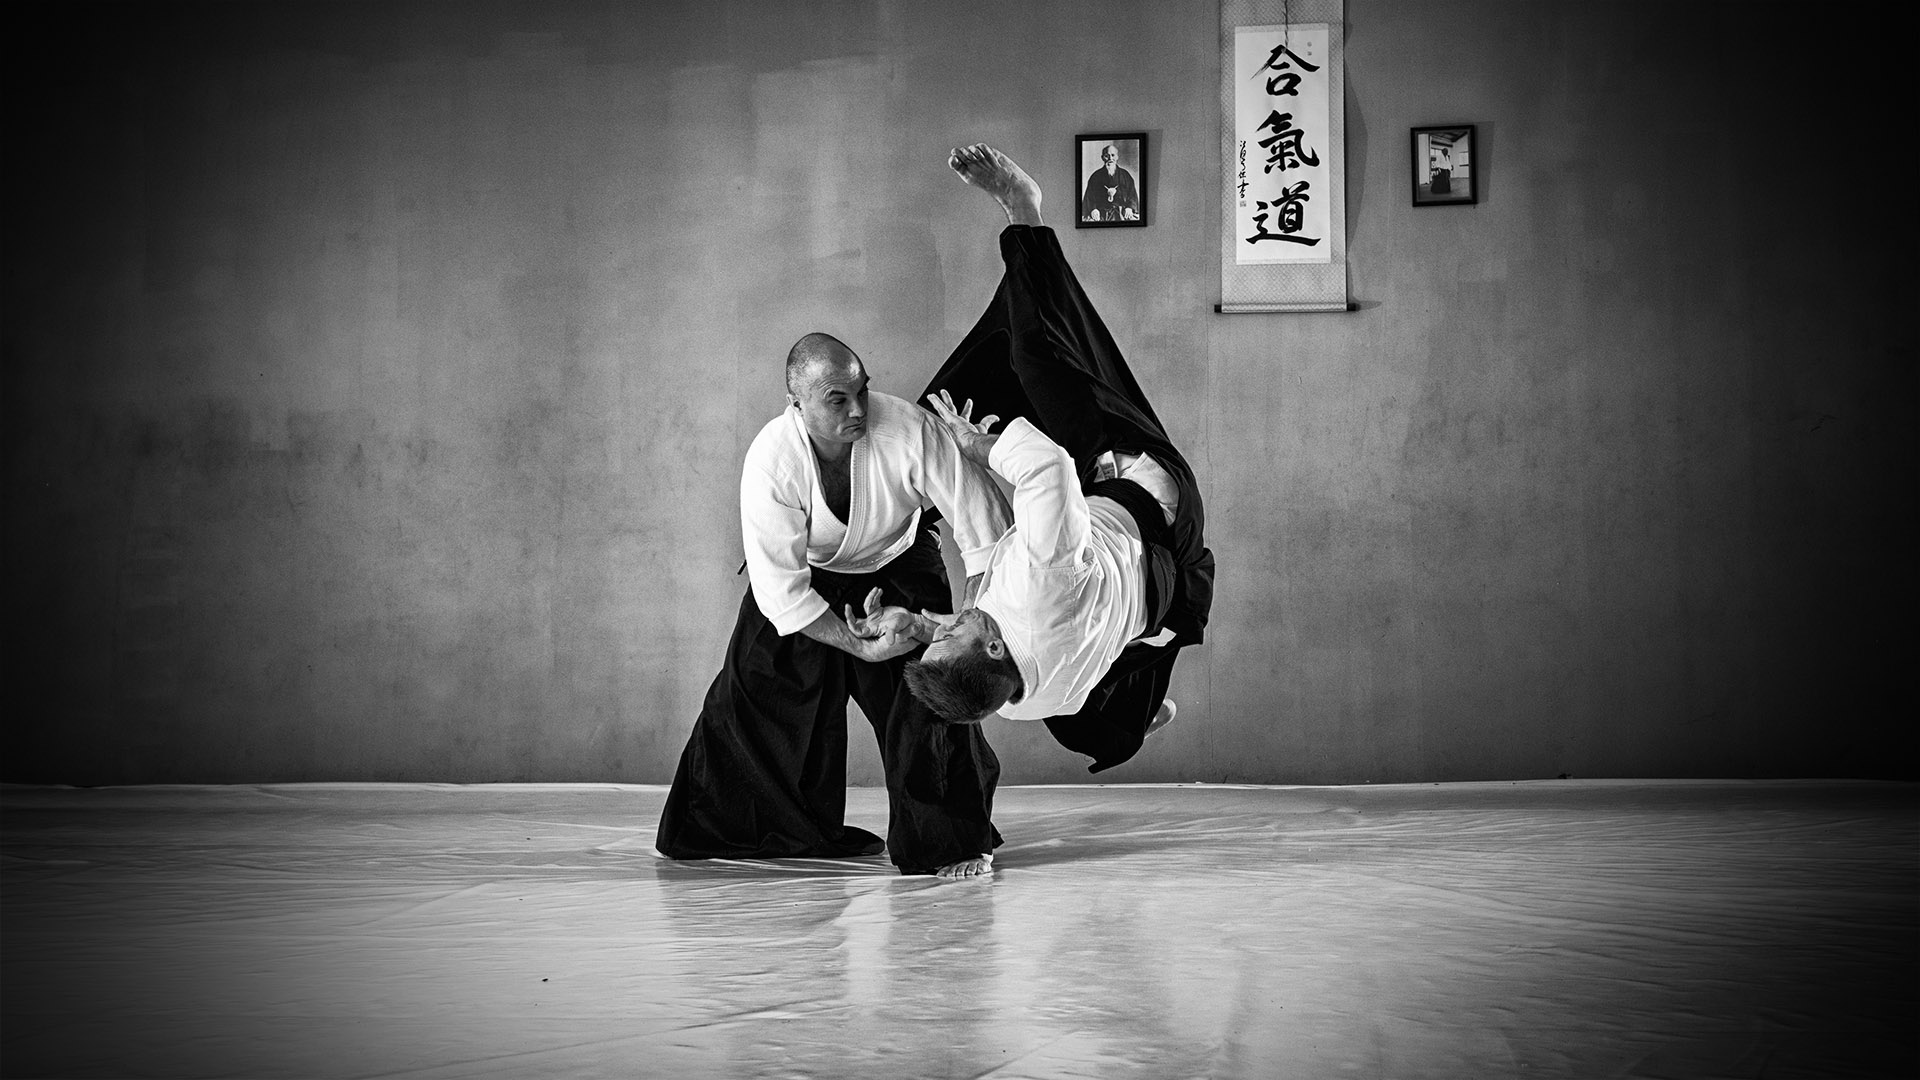 Download Aikido Wallpaper Gallery